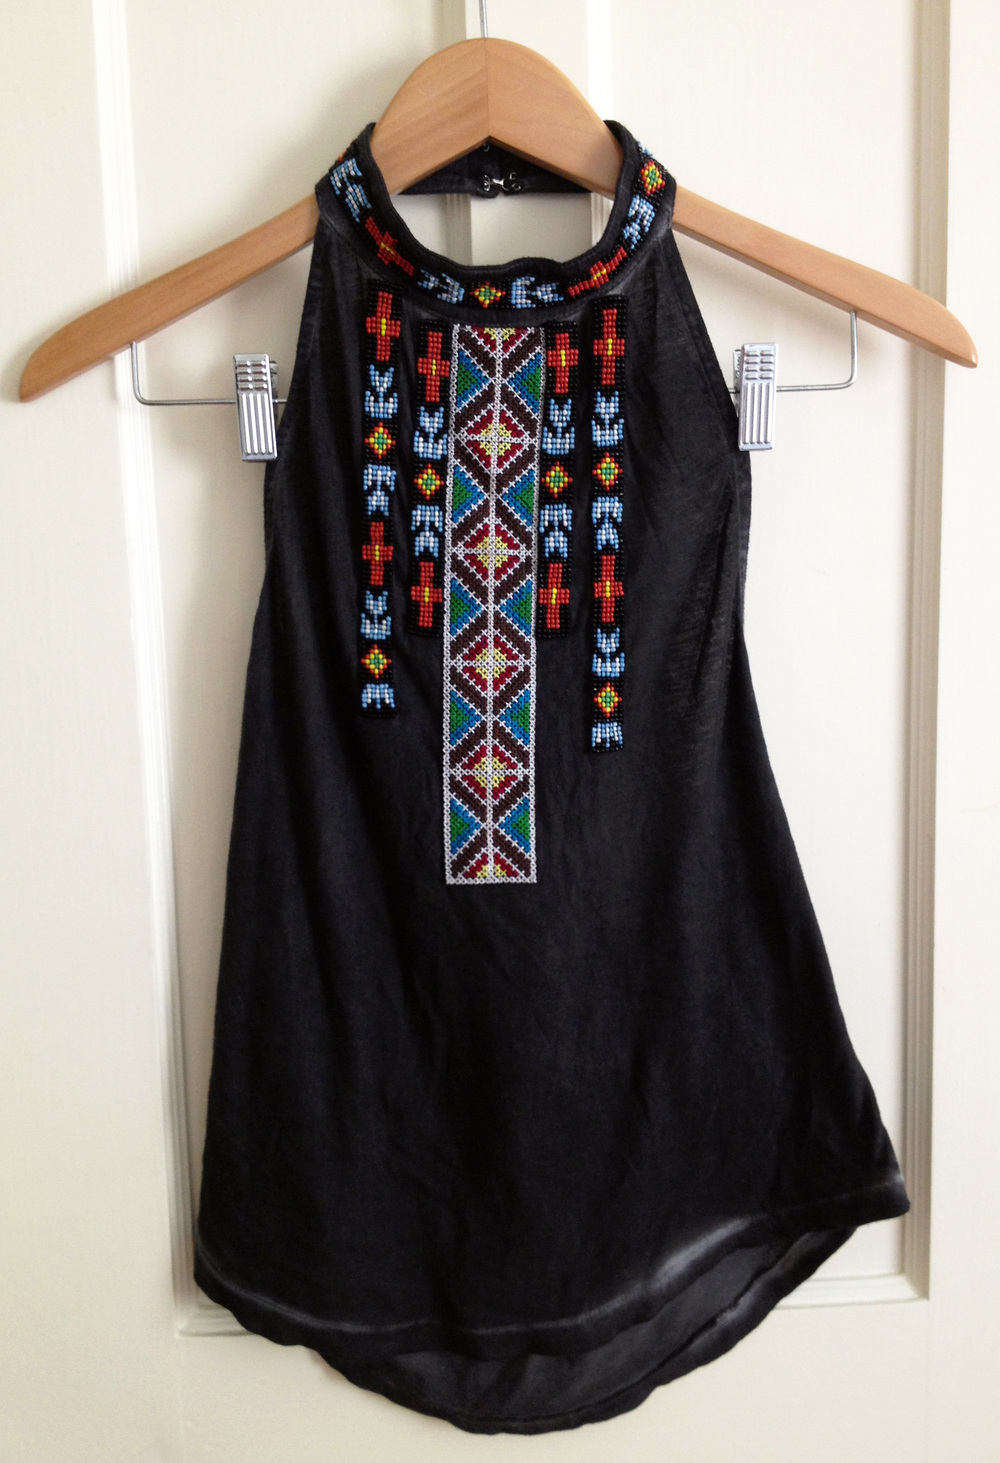 IN LOVE WITH THIS TOP. It is like Pocahontas and a comfy Urban Outfitters tee had a baby and made this. It was a BIG SPLURGE for me at $20, but I excitedly went home and wore it the very next night, so, worth it, right? Plus, the details are DIVINE.